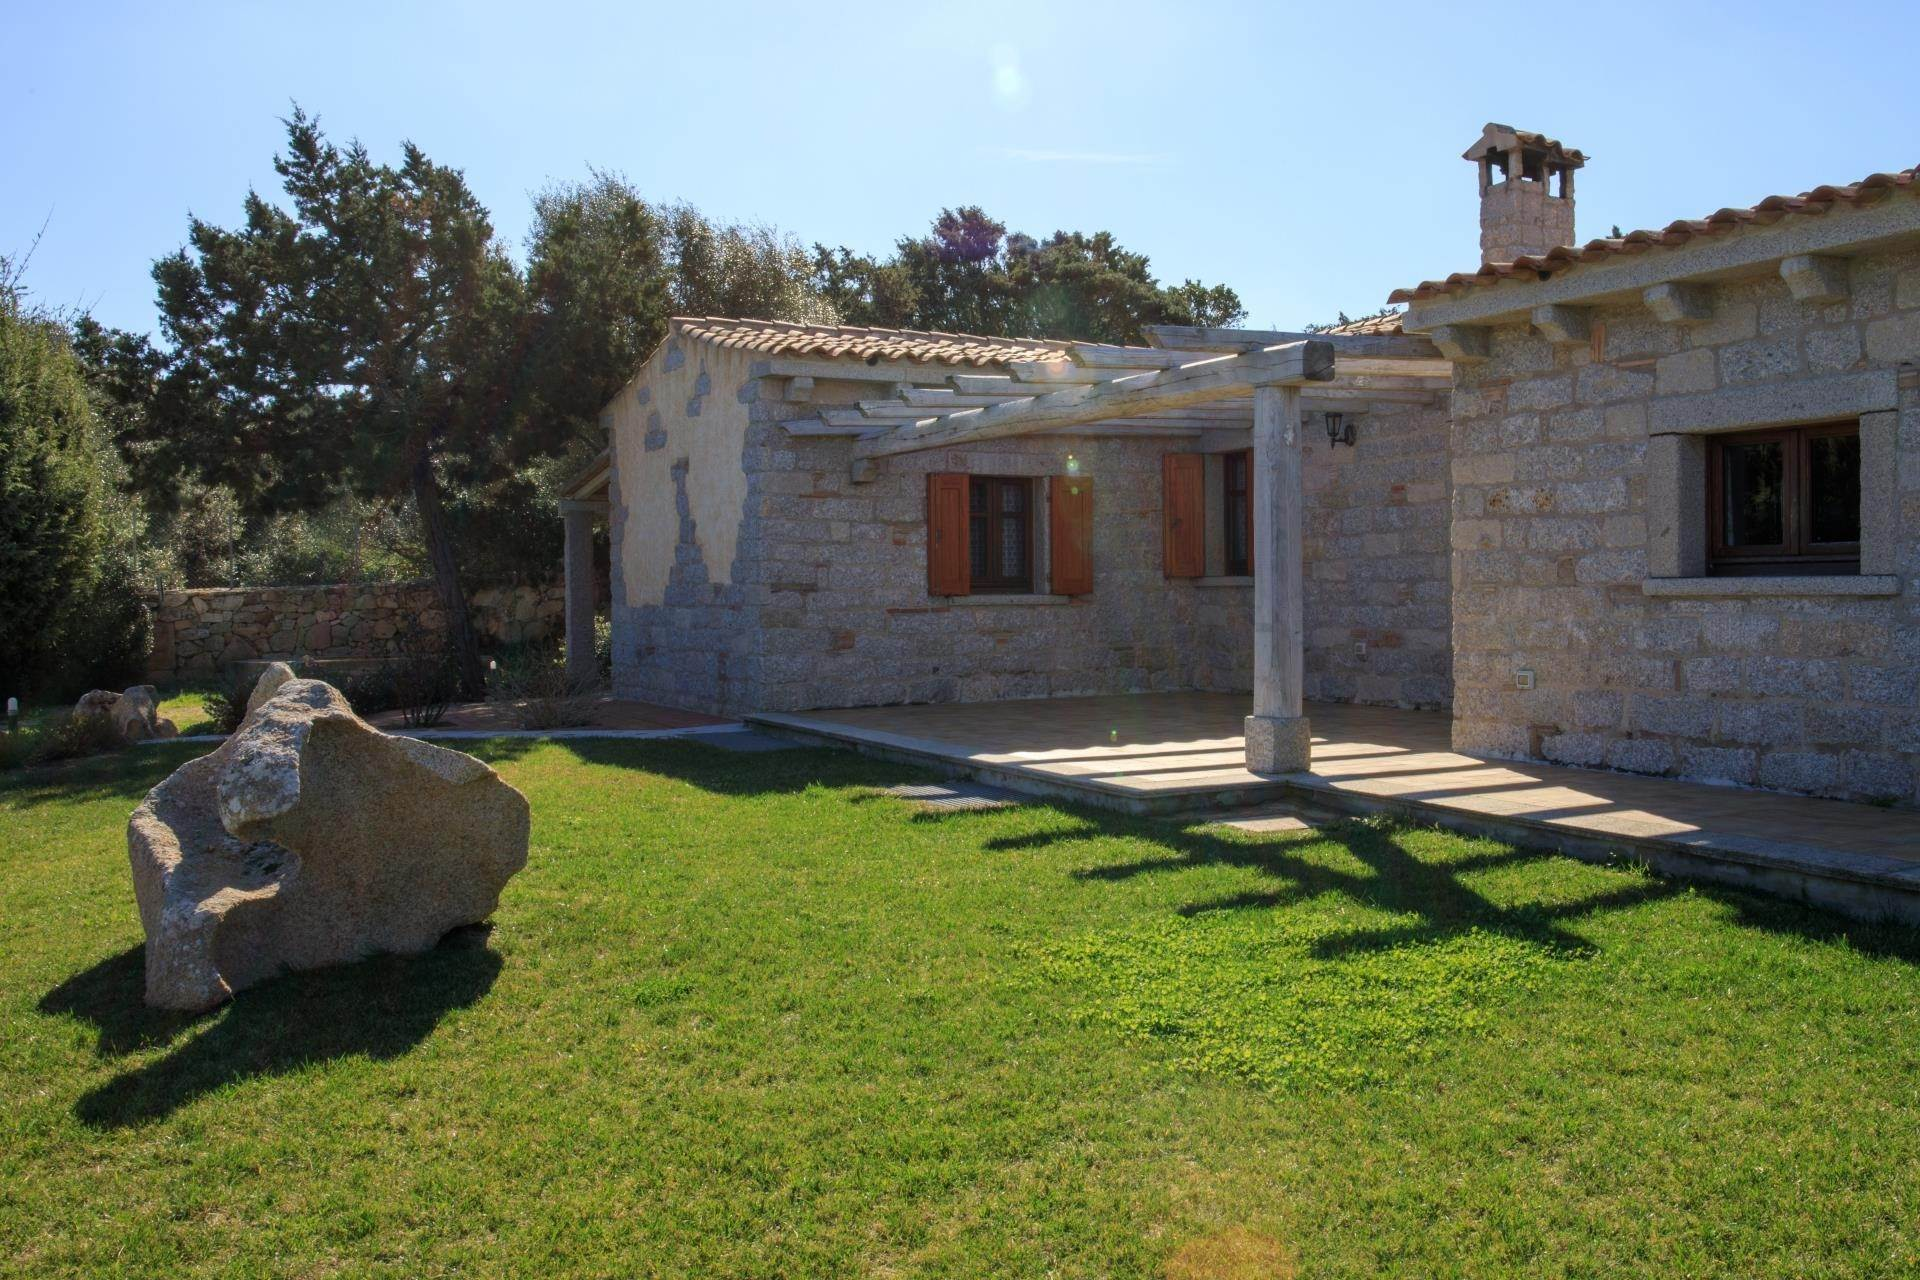 16. Villa/Townhouse for Rent at Country Villa with Pool for rent Costa Smeralda, Olbia Tempio,07021 Italy